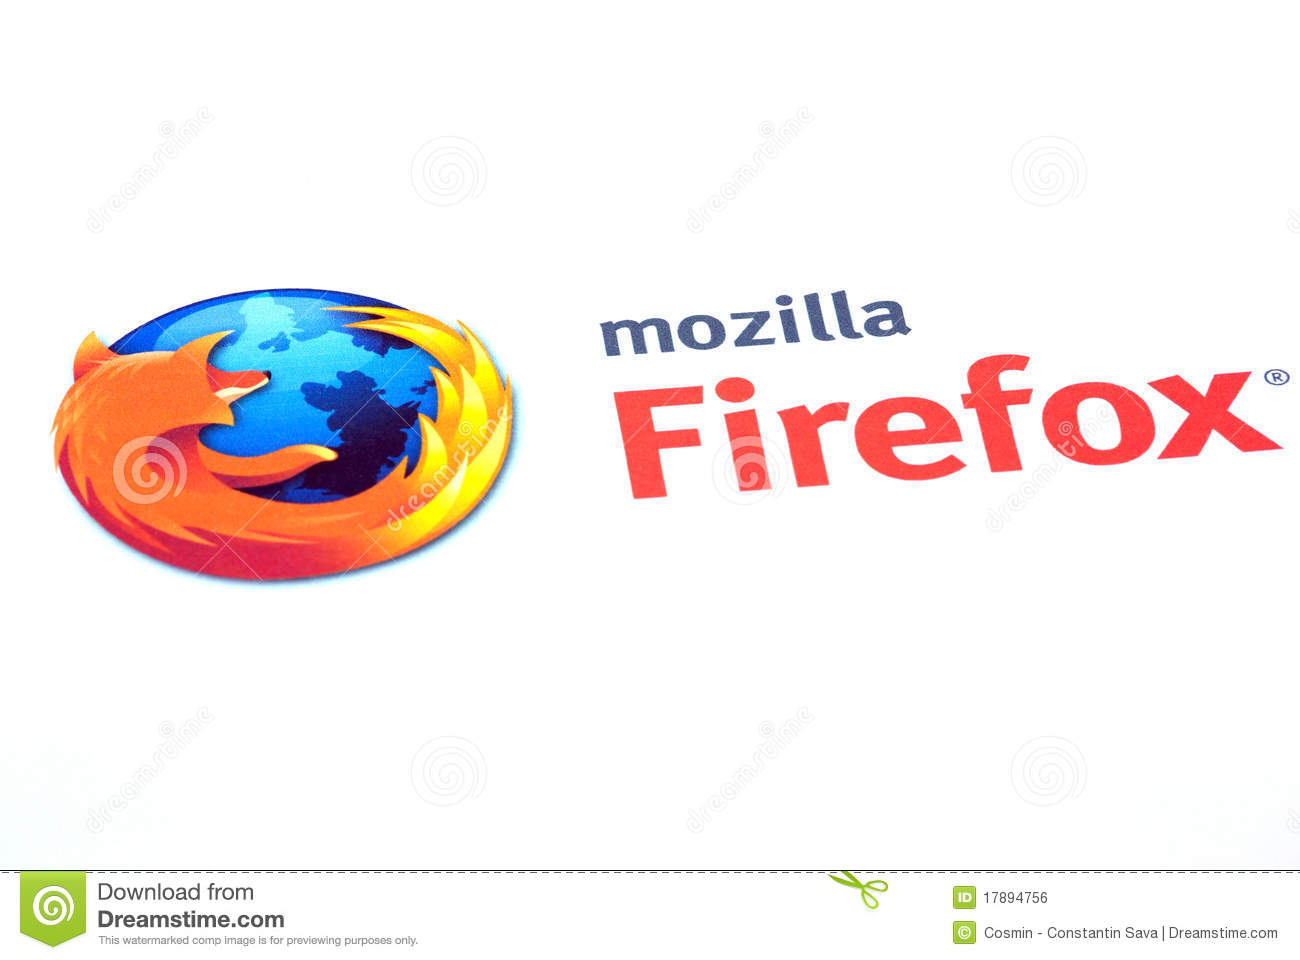 Business planning and consolidation download firefox